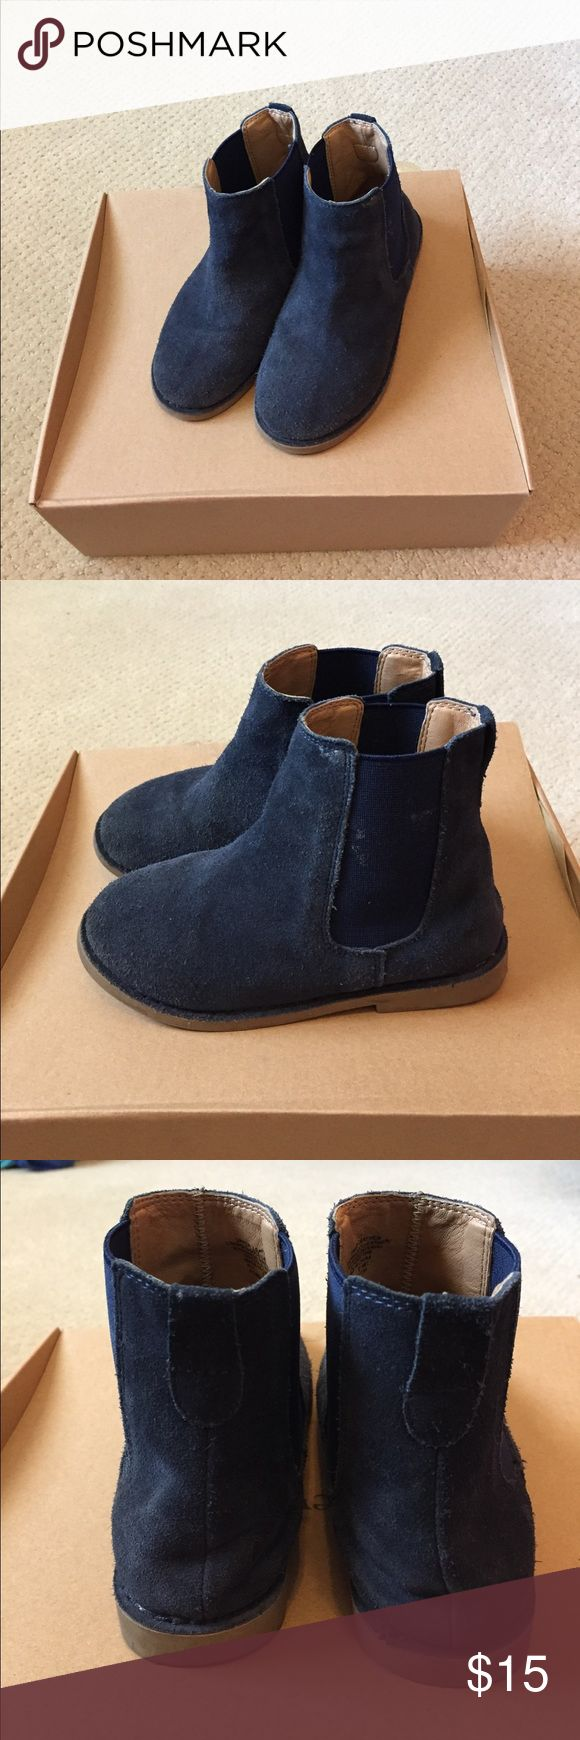 J Crew Boots Girls suede boots. Slip on. Rubber sole. J. Crew Shoes Boots